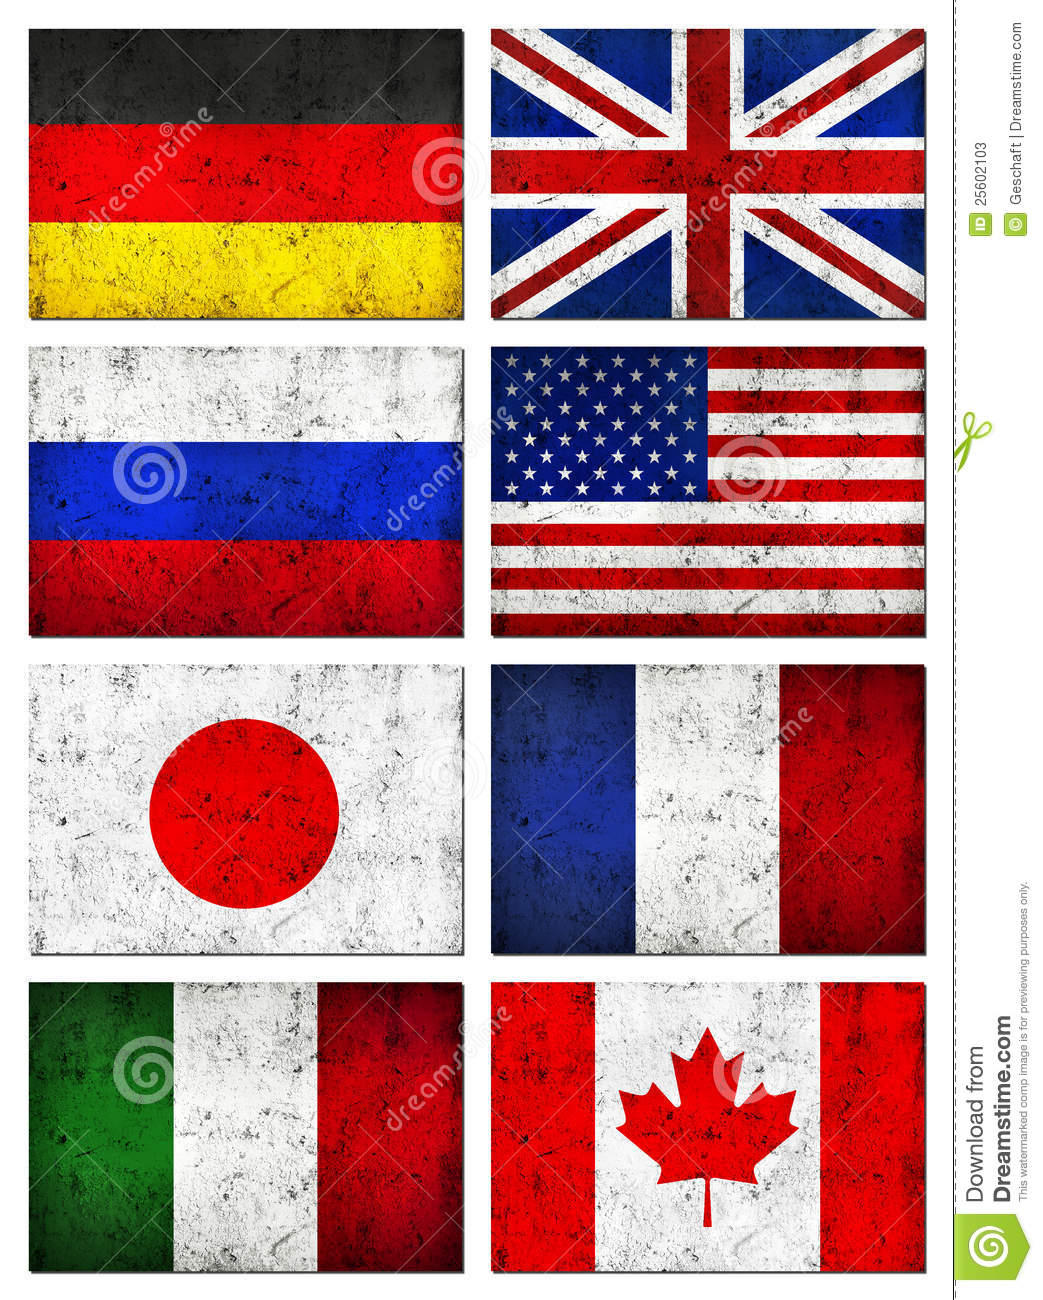 grunge dirty great 8 g8 countries flag stock photos image